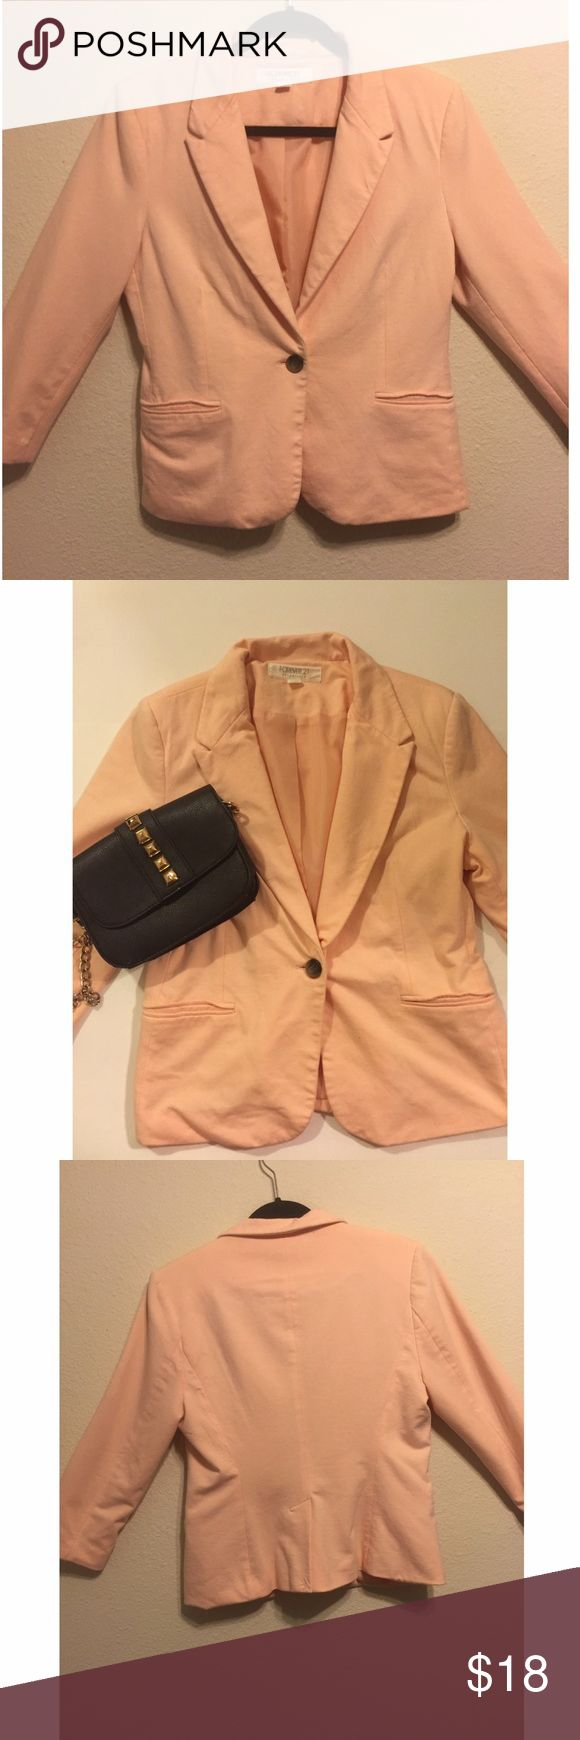 Light pink forever 21 blazer Super cute and fun light pink blazer size Large from Forever 21. One button and will pair well with a black outfit for work **please ask  any question and feel free to make me an offer** HAPPY POSHING 💕💁🏽💕💁🏽 Forever 21 Jackets & Coats Blazers